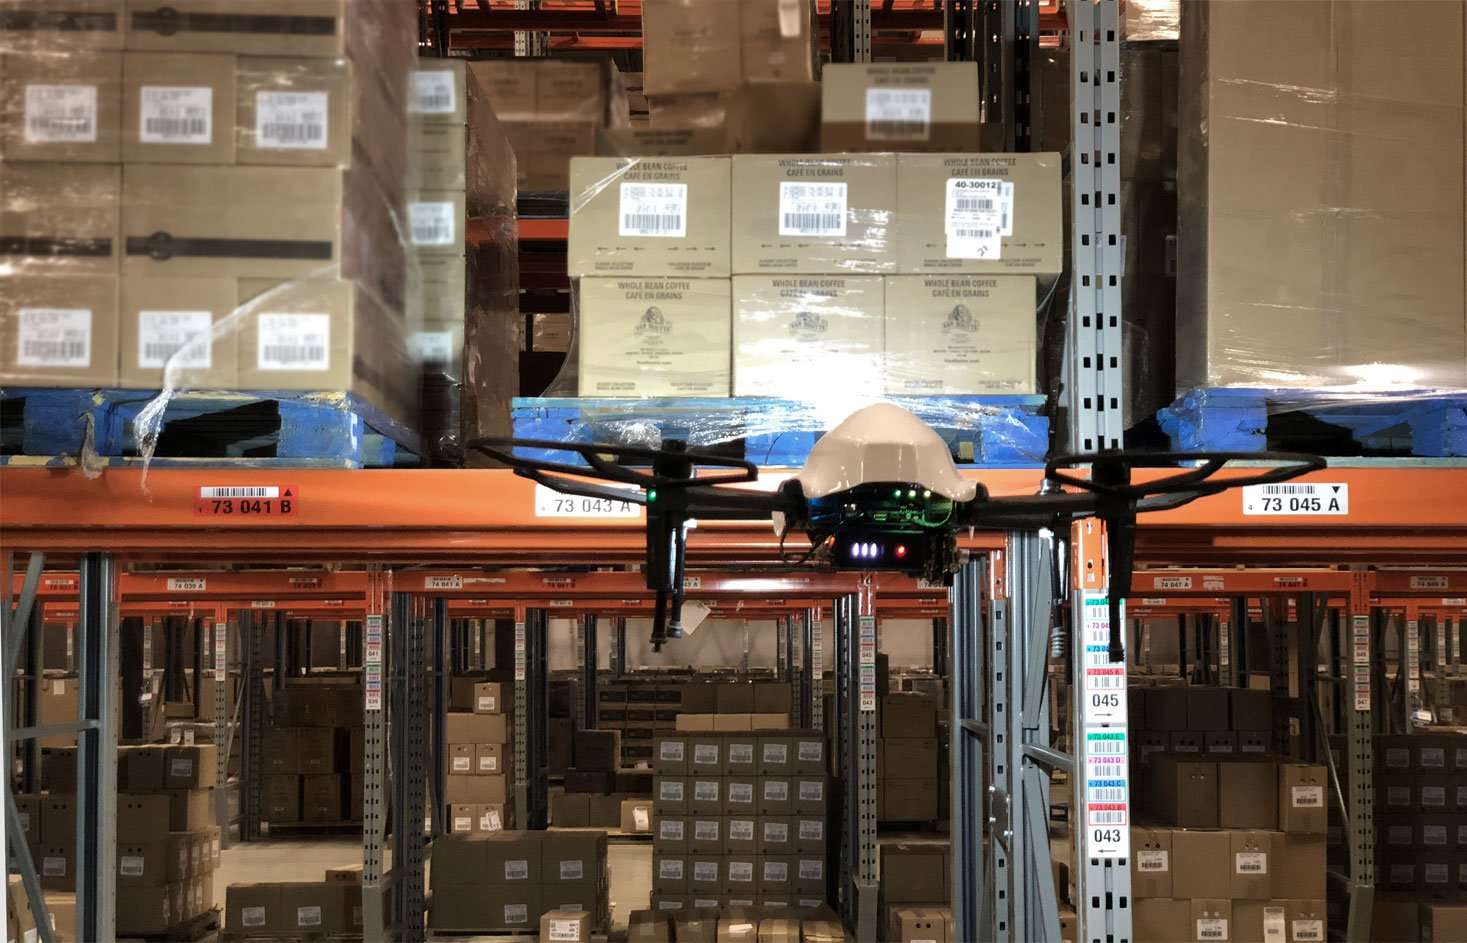 Warehouse Inventory Drones 2019